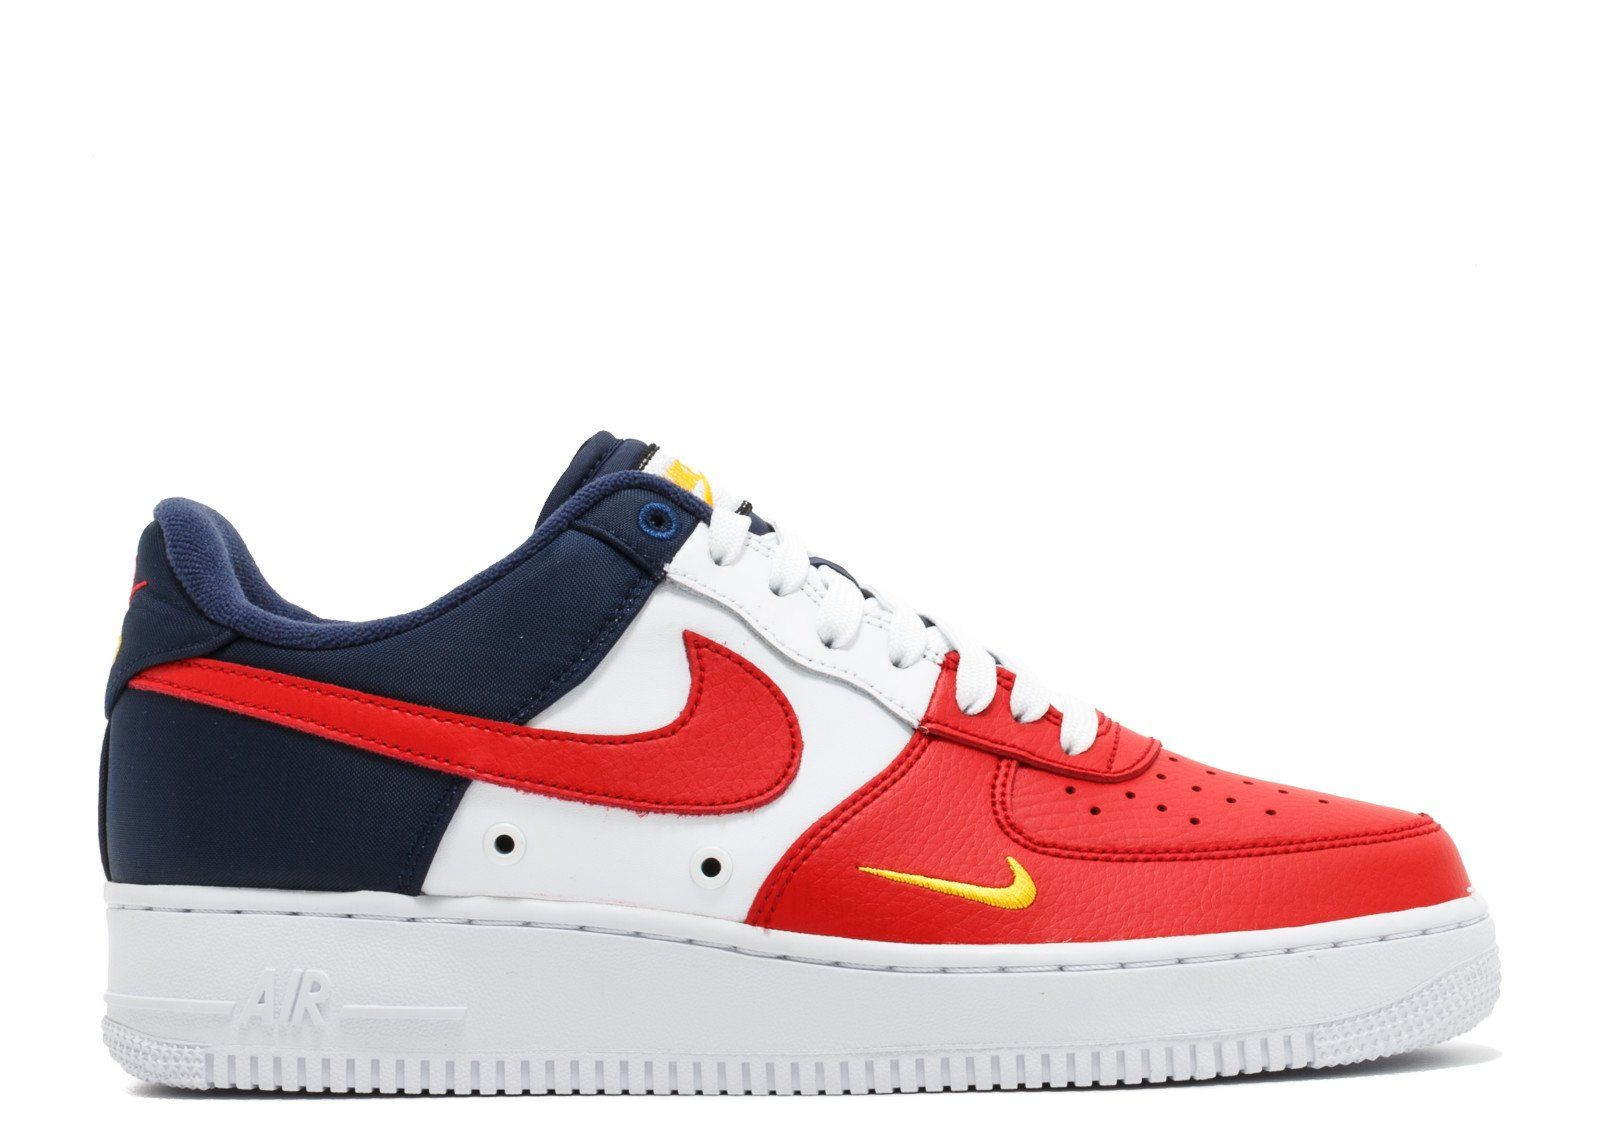 Nike Air Force 1 Low Independence Day (2017) in 2020 | Red